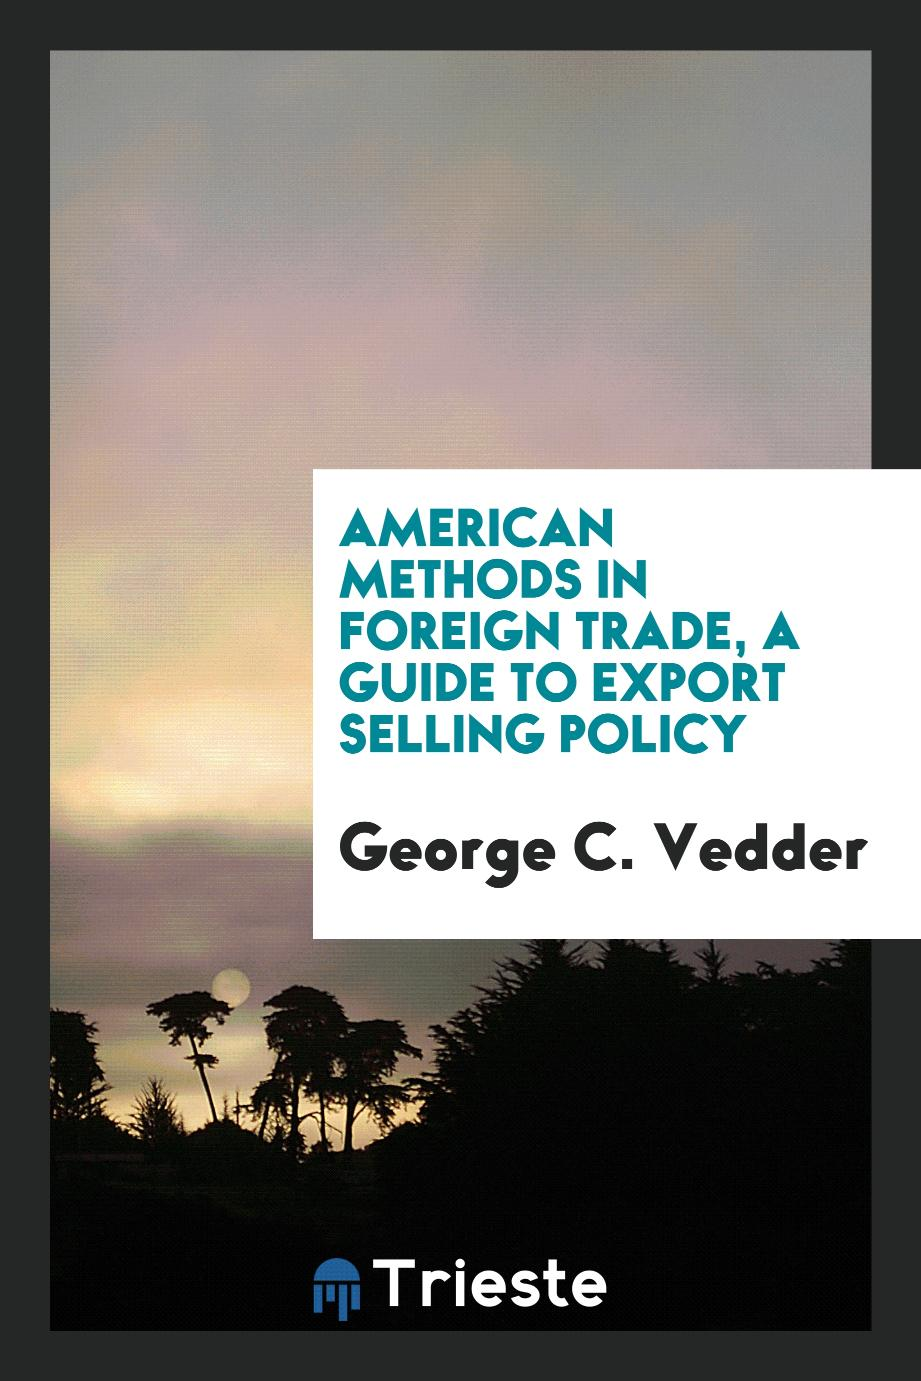 American methods in foreign trade, a guide to export selling policy